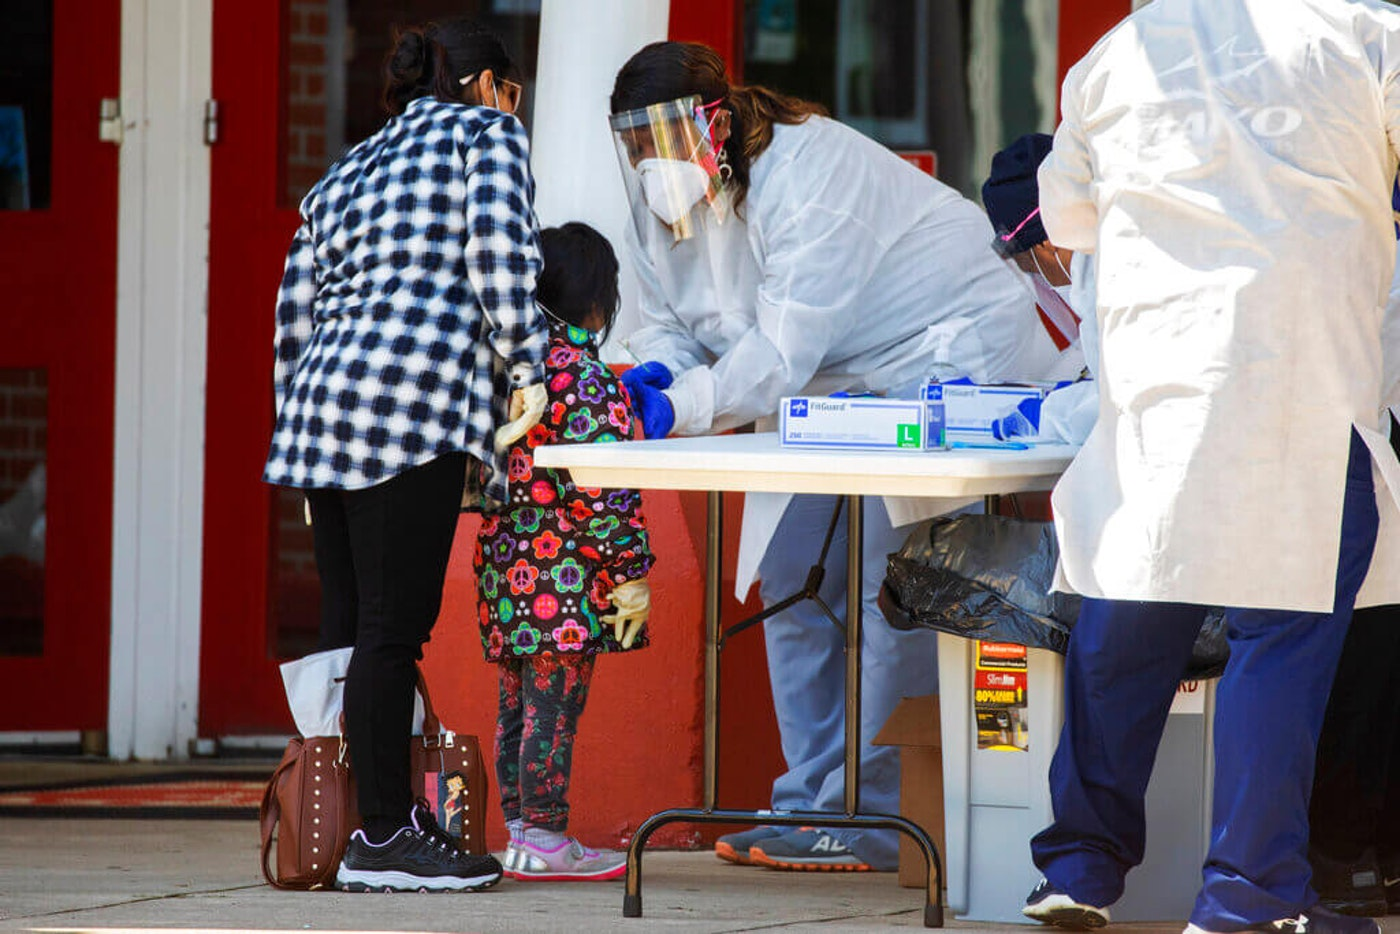 A little girl is tested for COVID-19 at Annandale High School, in Annandale, Va. (AP Photo/Jacquelyn Martin)